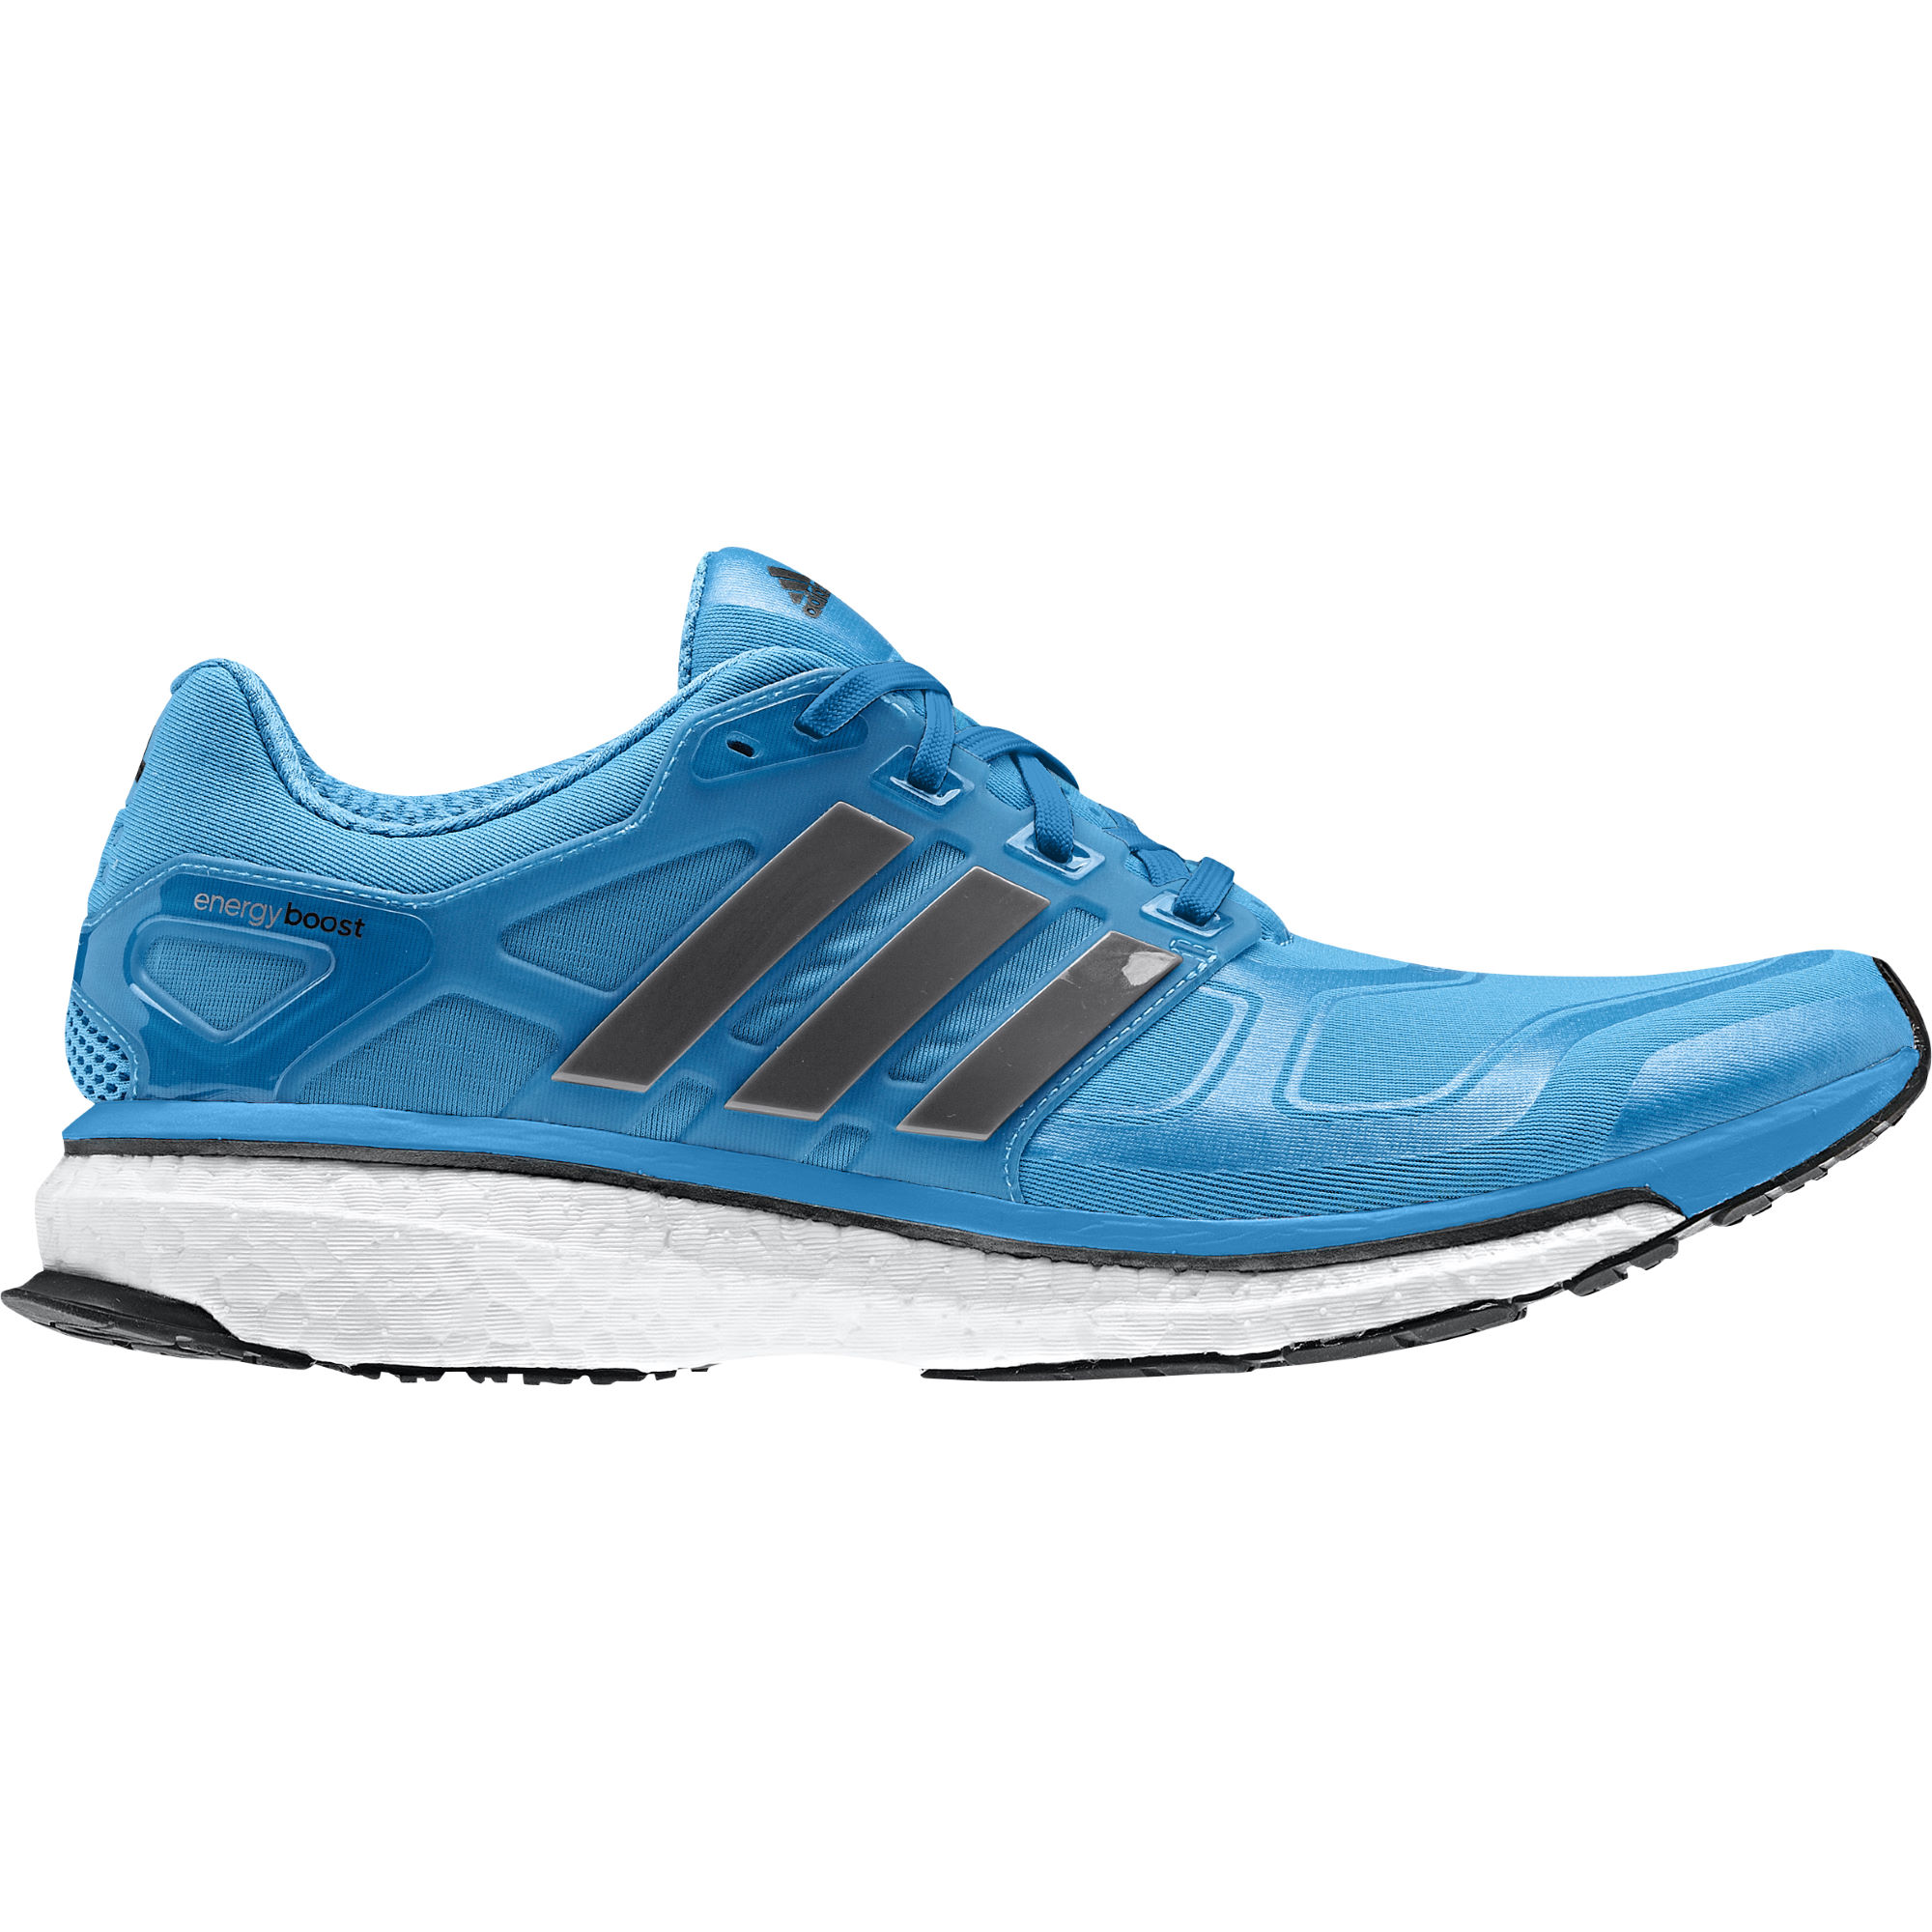 Chaussures de running amorties adidas energy boost 2 - Tapis de course energetics power run 4 0 ...